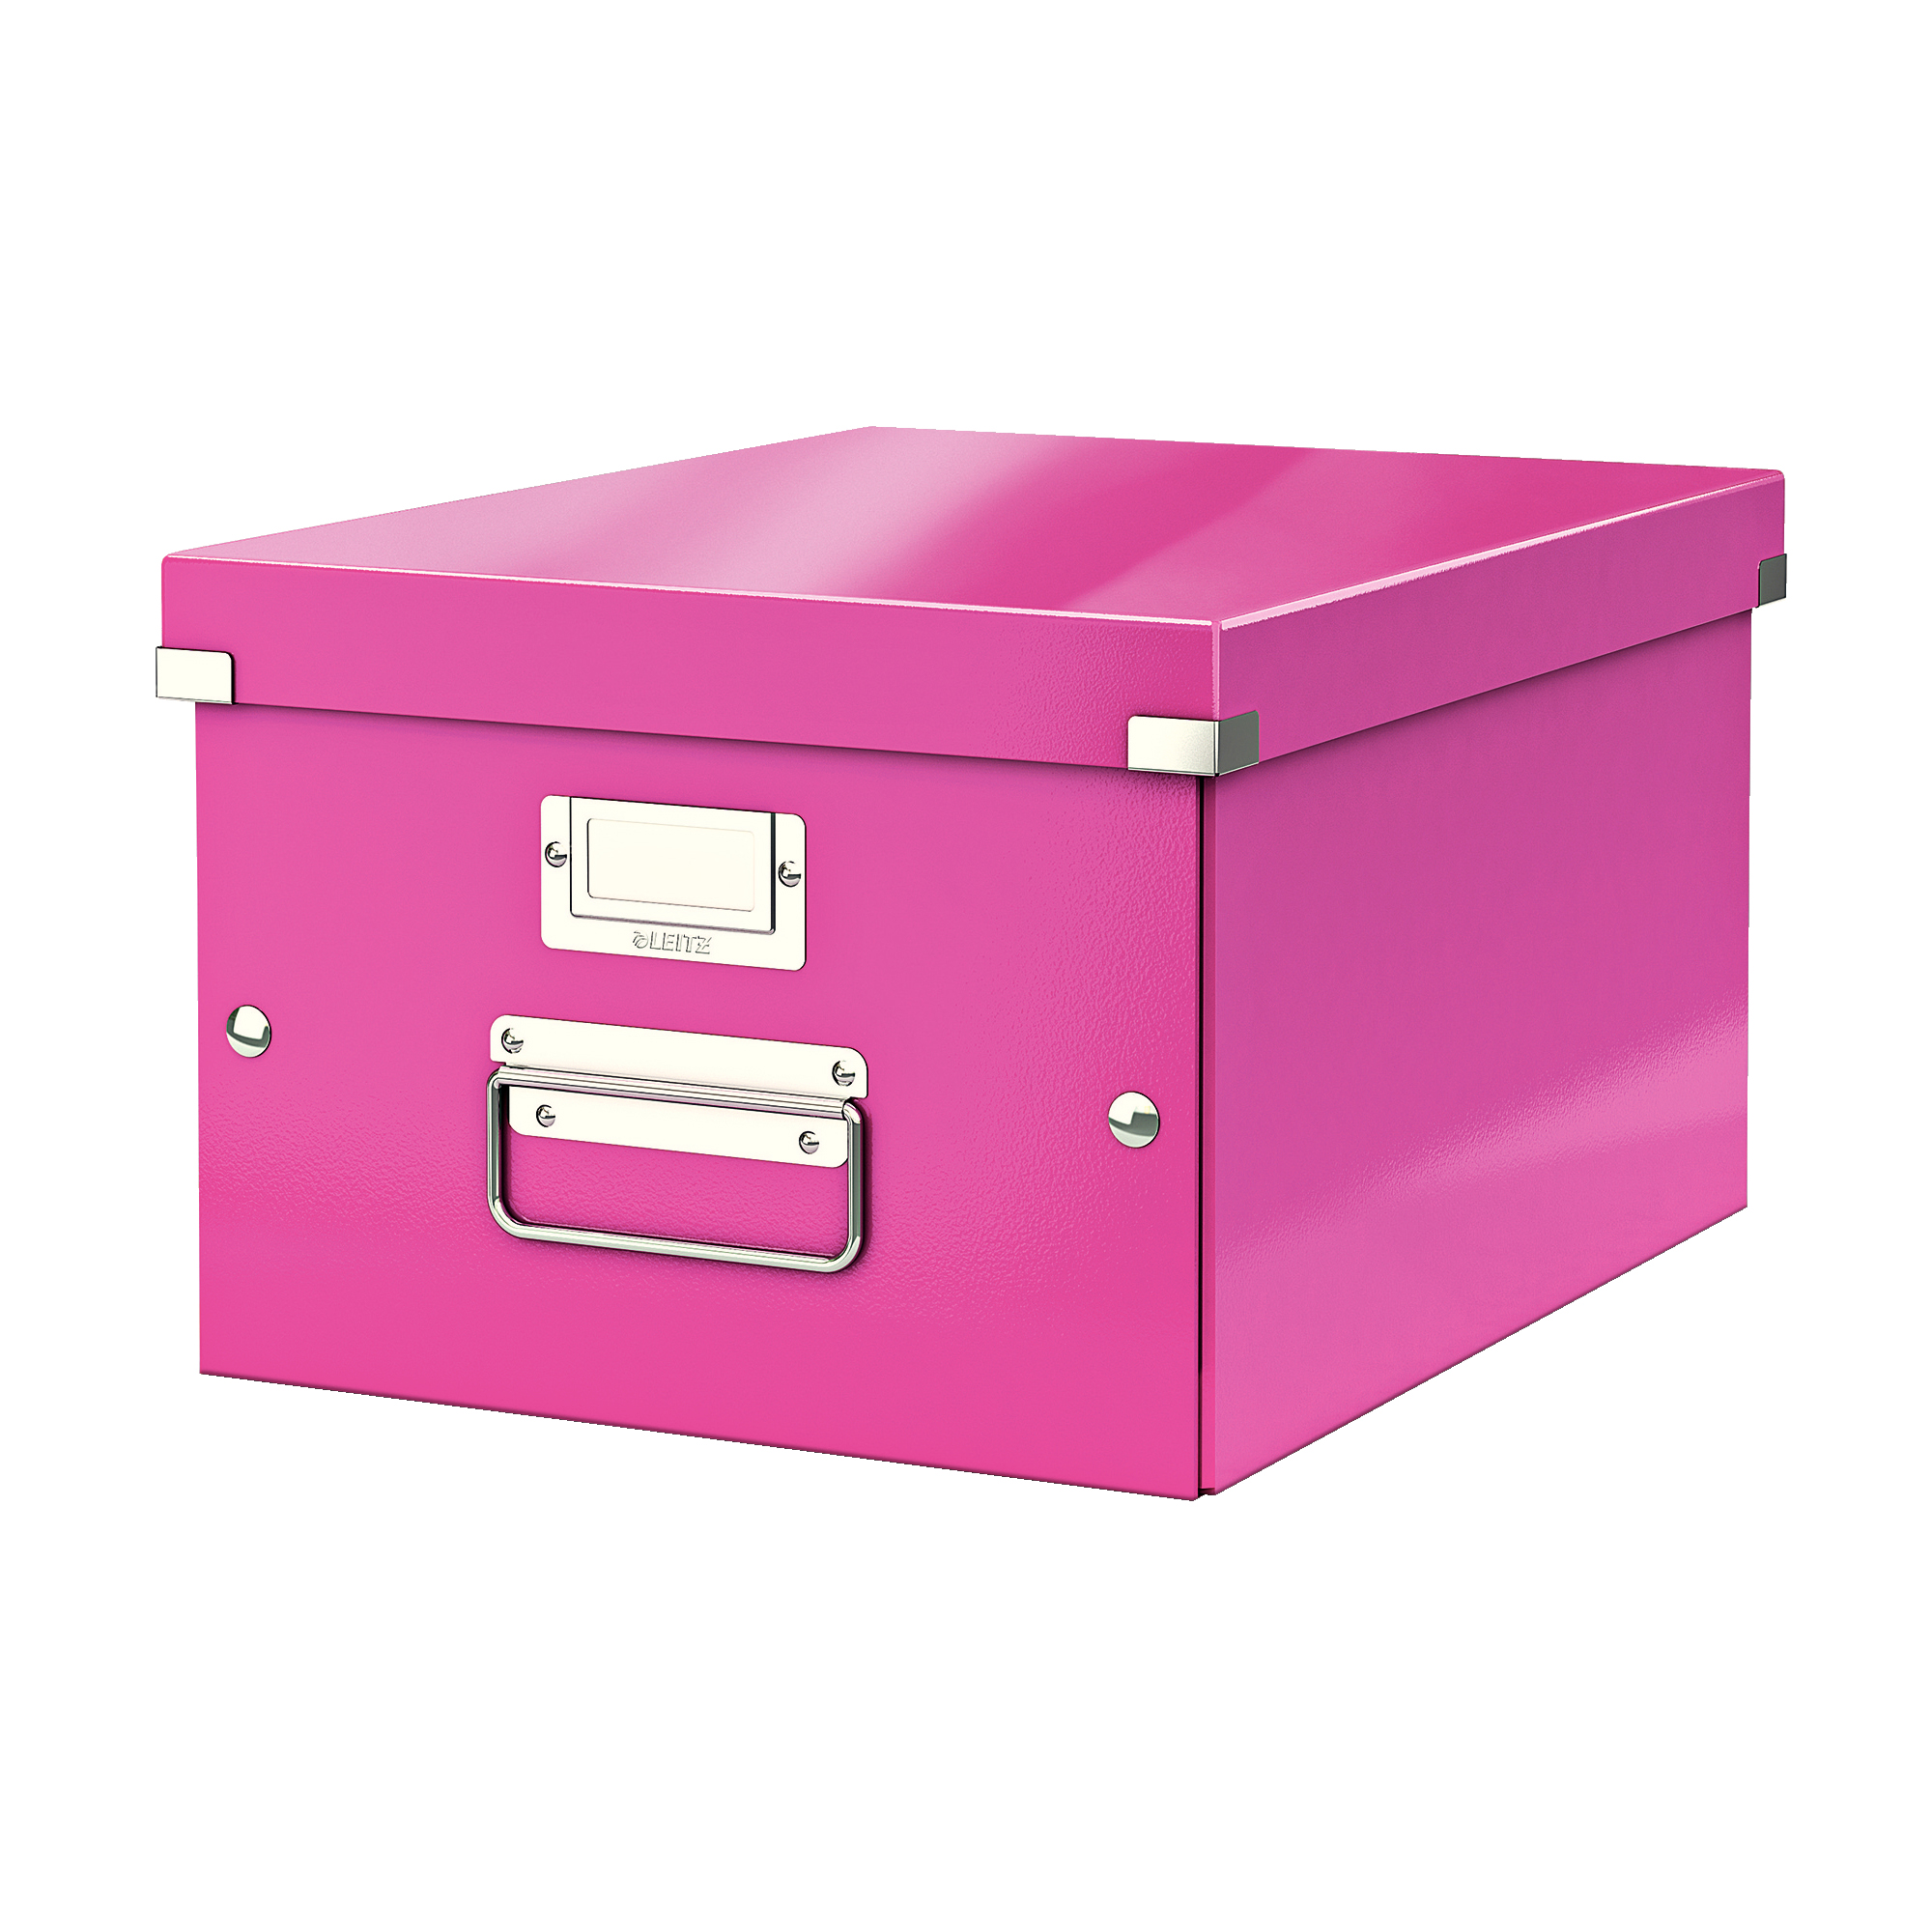 Tool Boxes Leitz Click & Store Collapsible Storage Box Medium For A4 Pink Ref 60440023